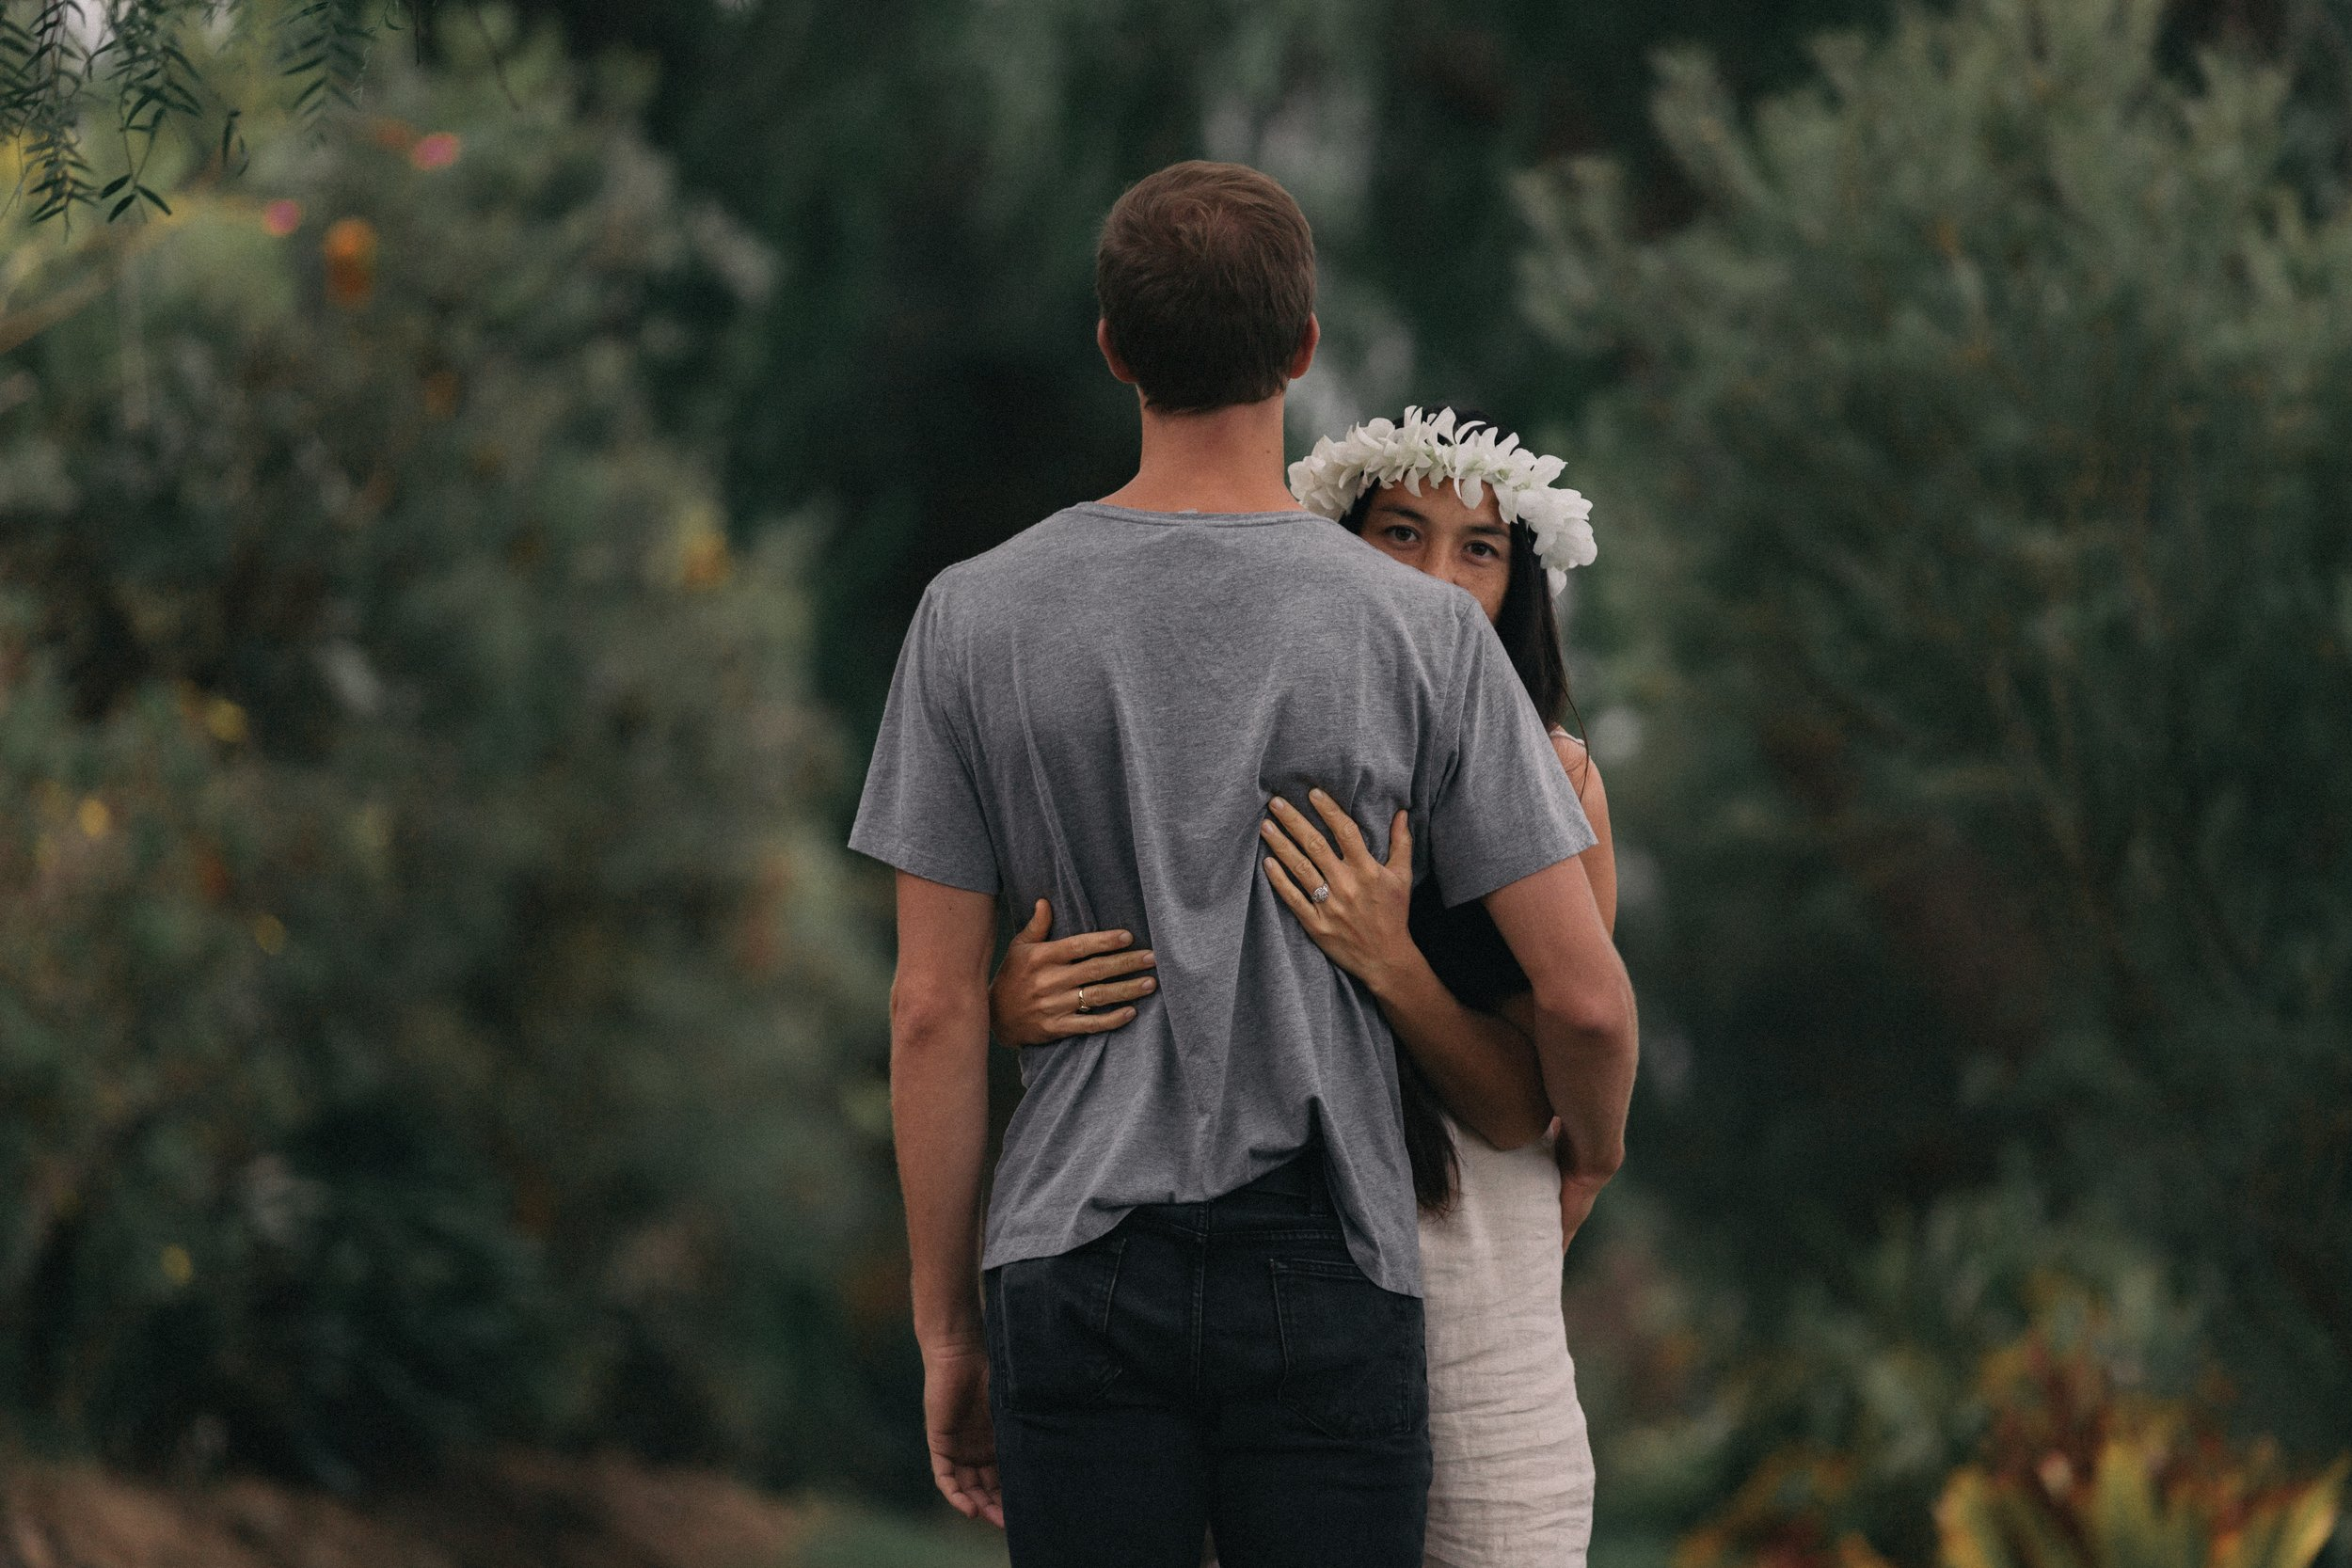 A girl and a boy embracing. The girl is wearing a white flower crown, and has an engagement ring.